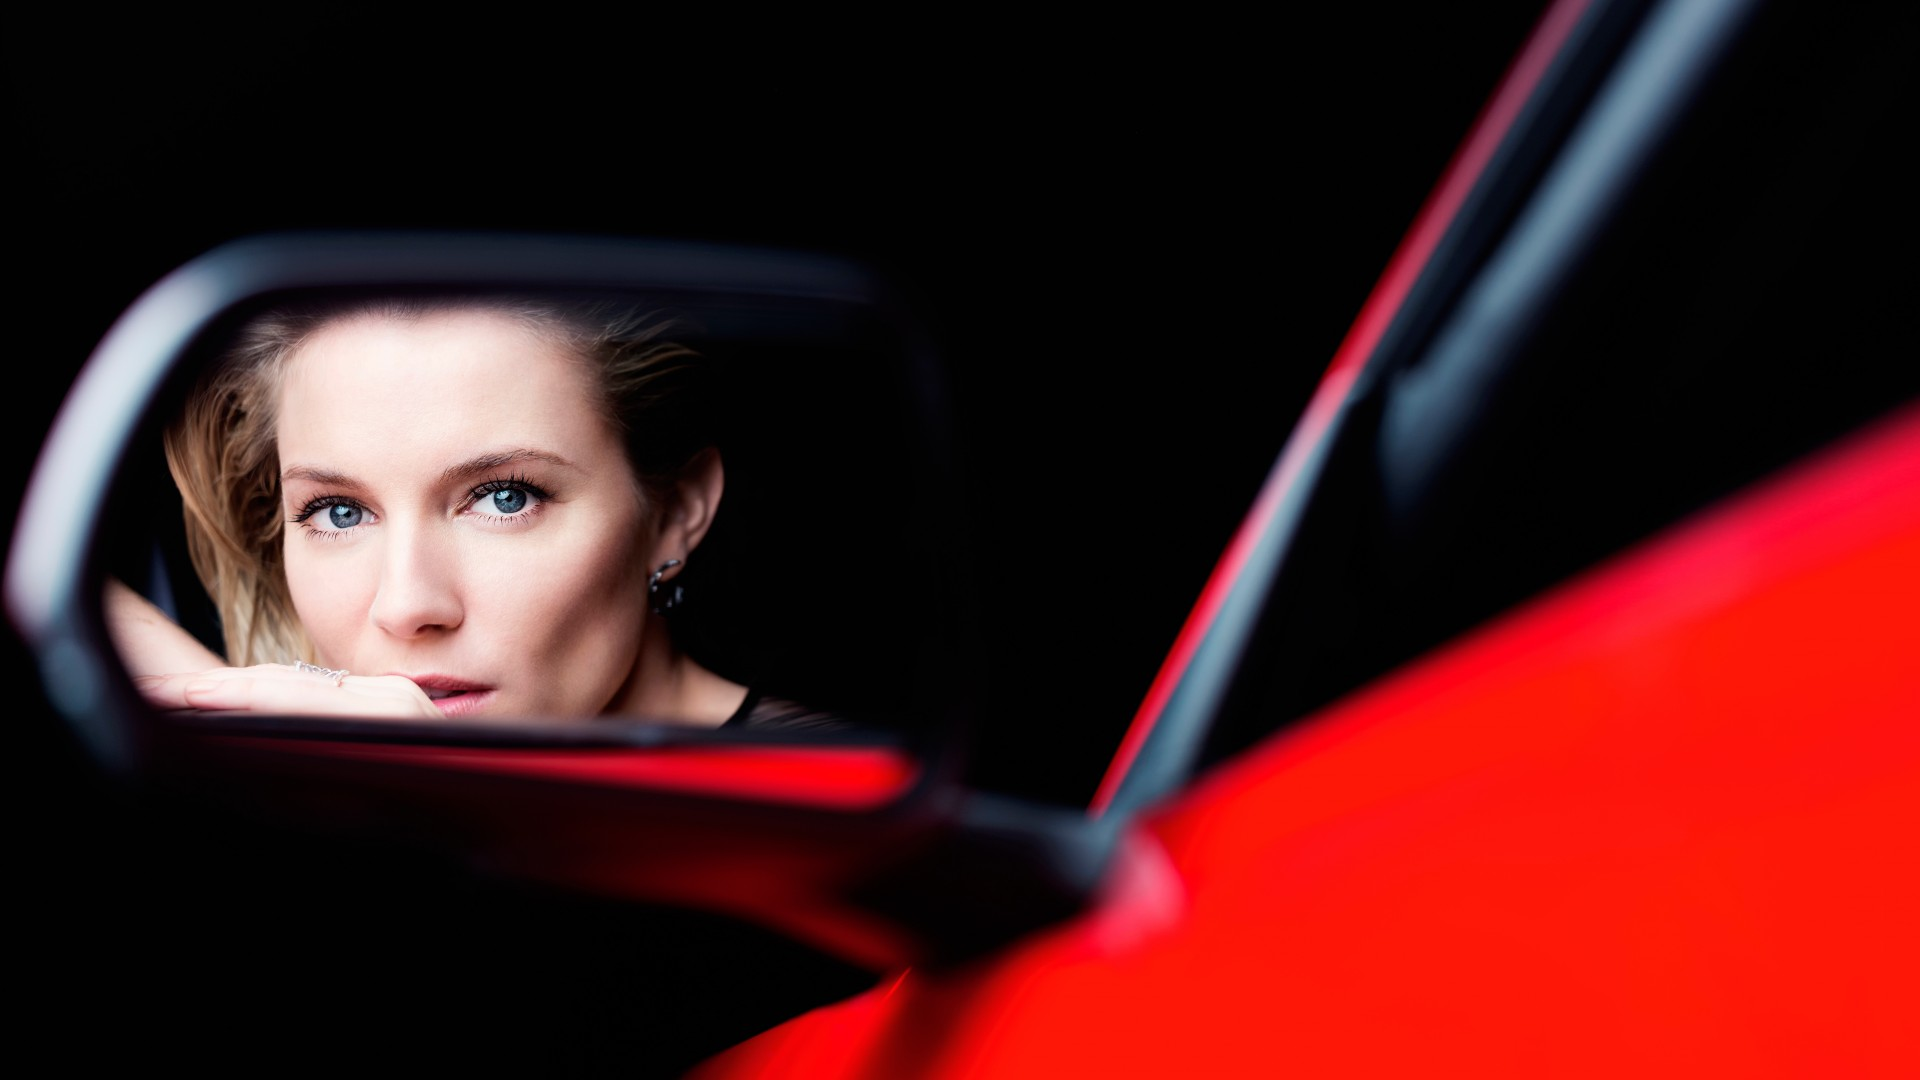 Sienna Miller, Actress, red, car, reflection, mirror (horizontal)